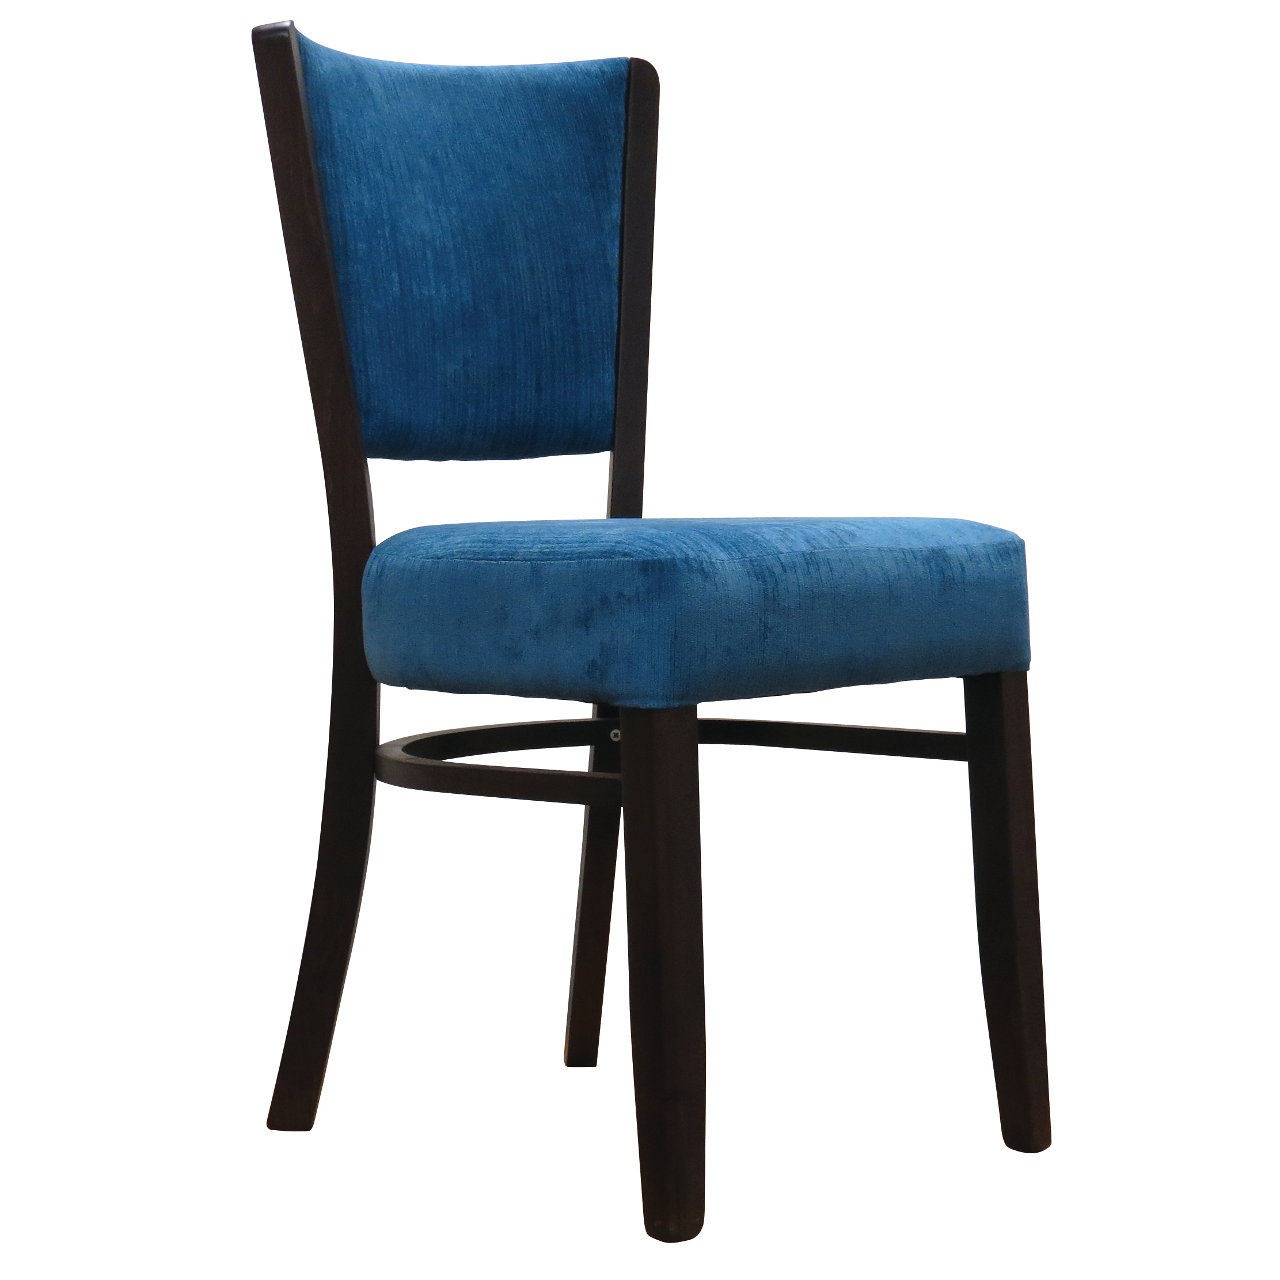 A23 Uph side chair